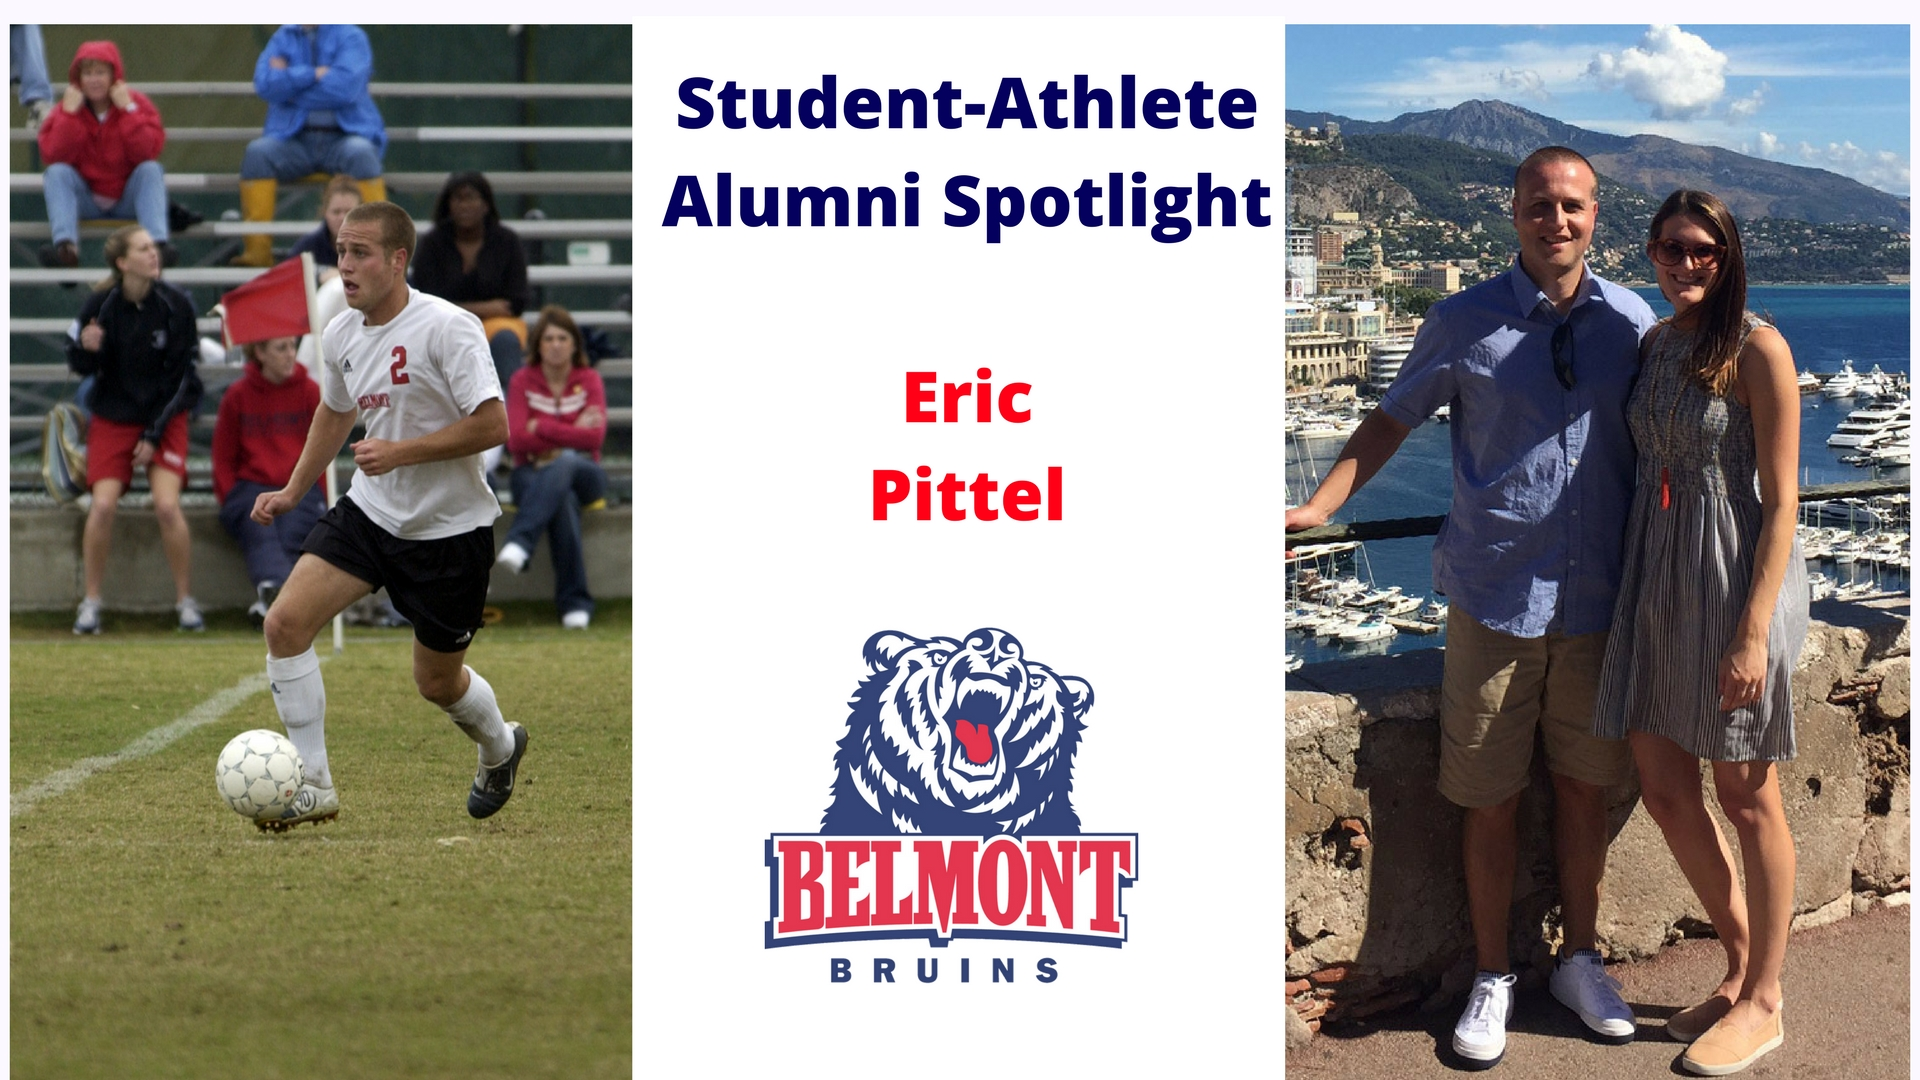 Student-Athlete Alumni Spotlight -- Eric Pittel